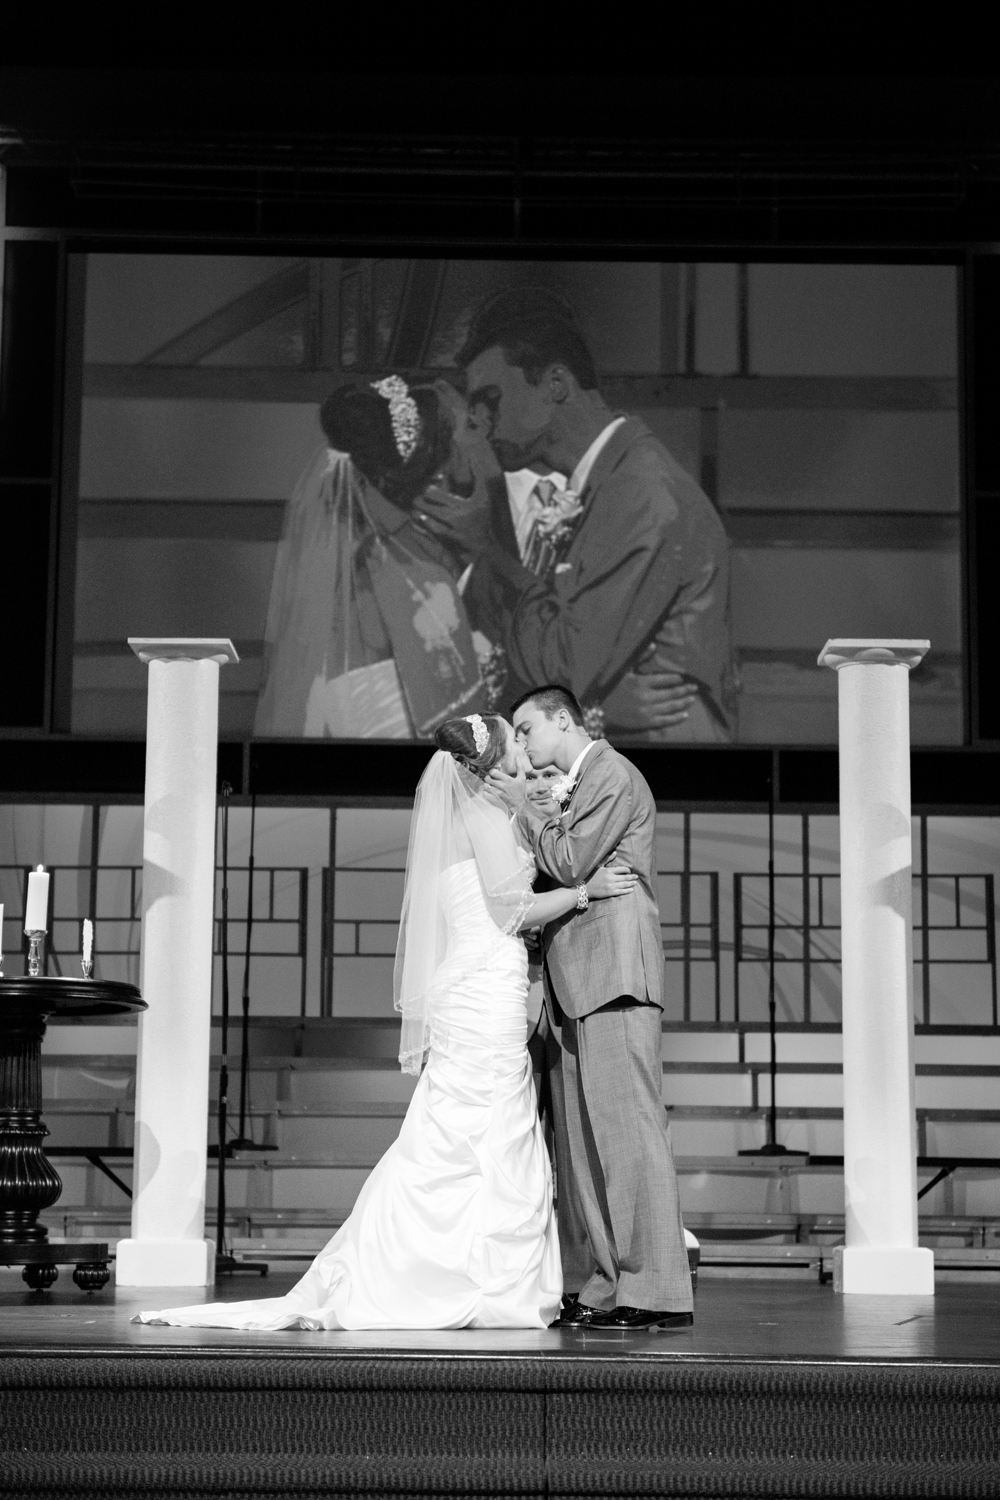 First wedding kiss in black and white at Liberty Baptist Church in Hampton, Virginia